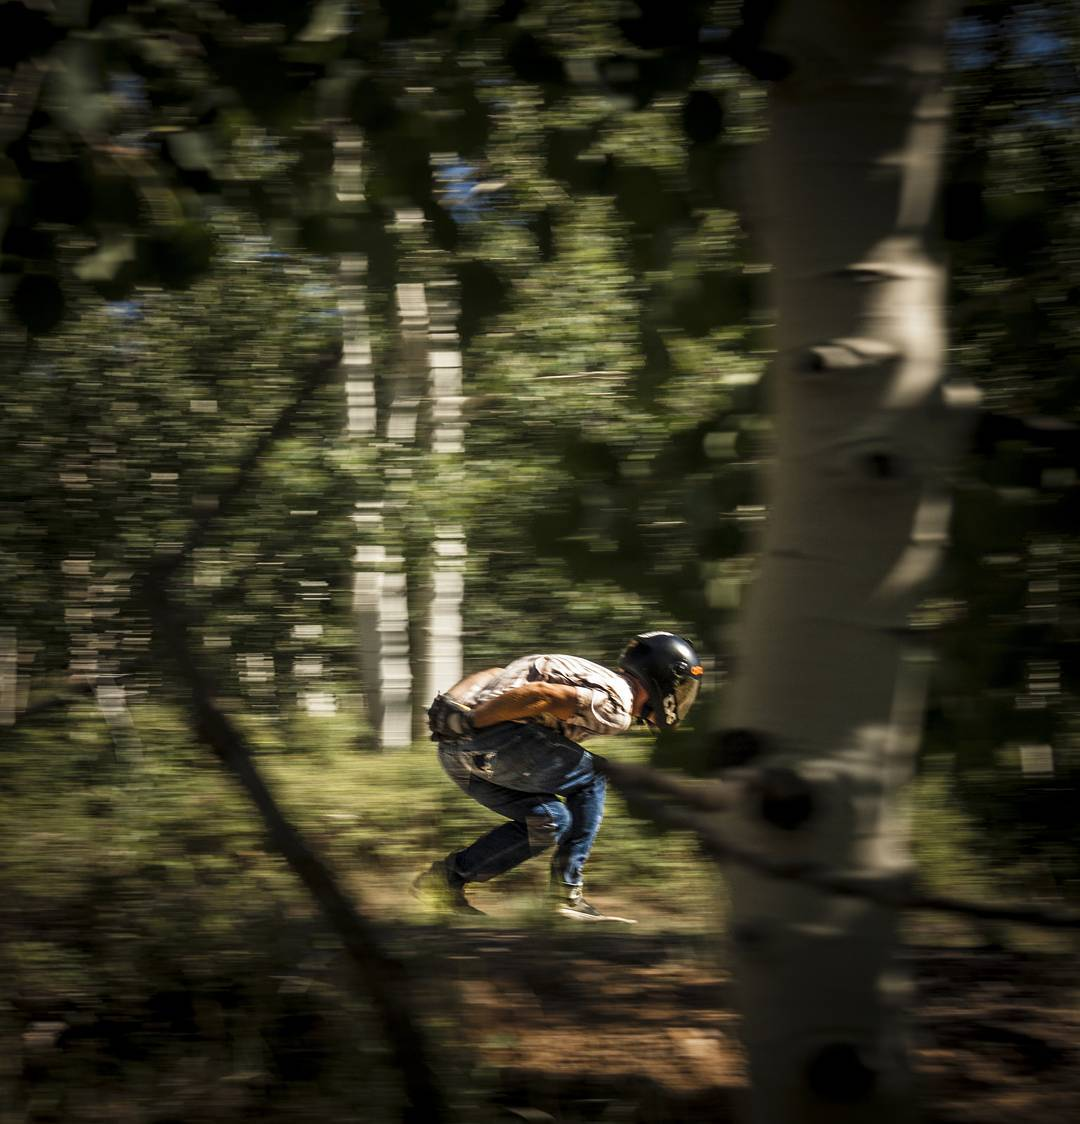 #LoadedAmbassador @rileywirvine Running through them trees like Snoop Dogg at Hempfest.  Photo: @avant_gnar  #LoadedBoards #Tesseract #Truncated #Orangatang